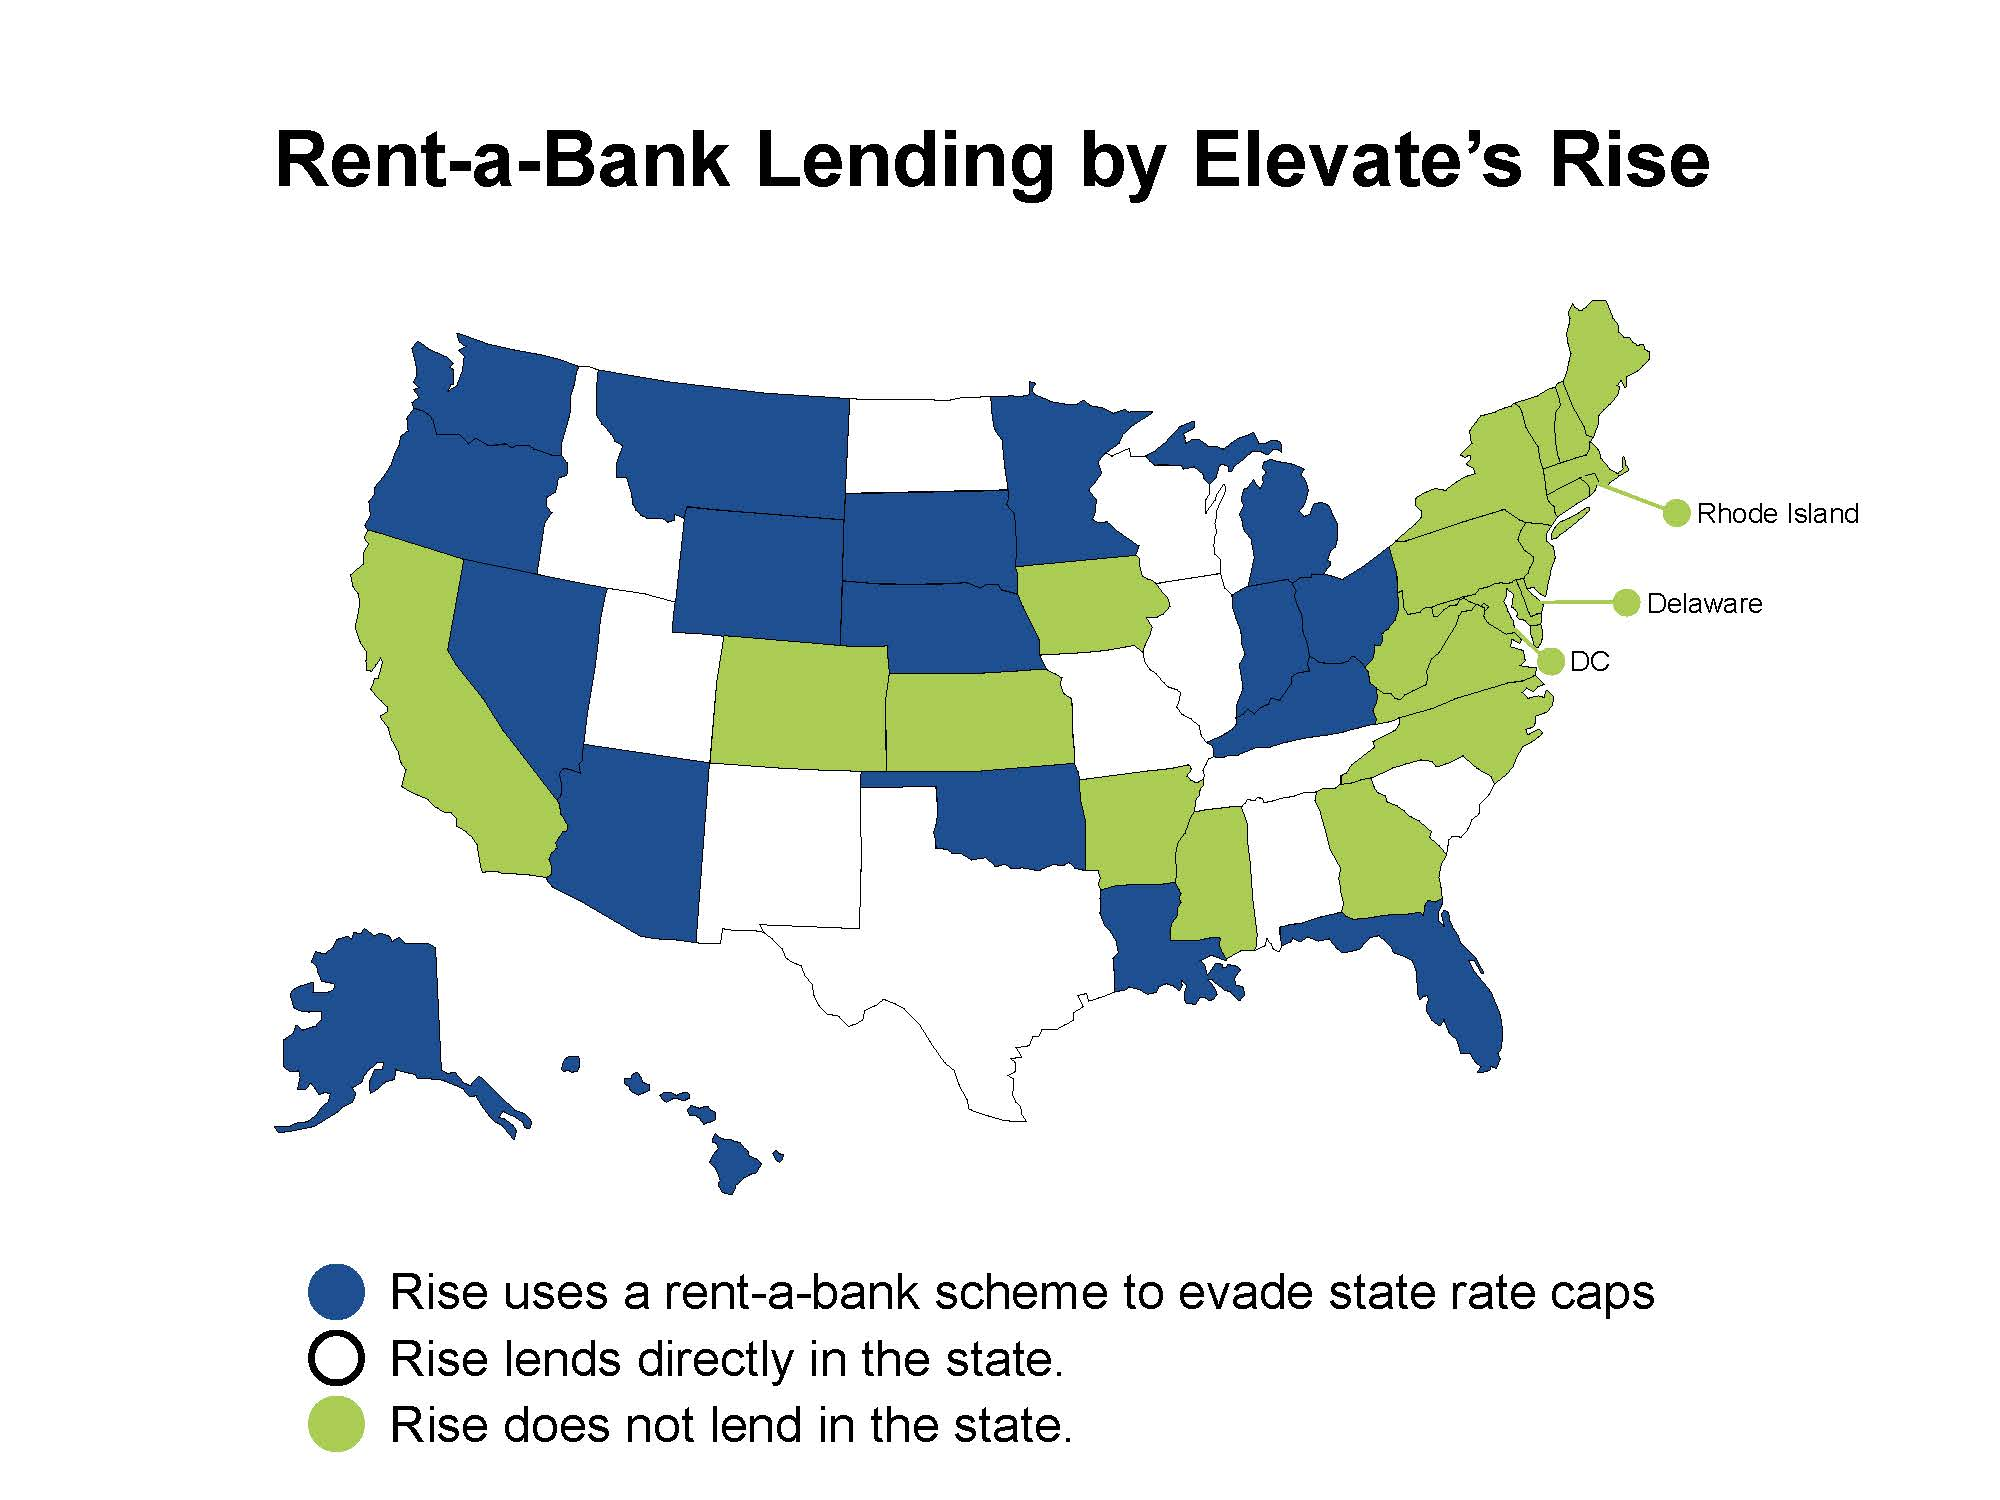 Map of the U.S. in which the states that Elevate's Rise uses rent-a-bank schemes to avoid state rate caps are colored in blue. States in which Elevate's Rise directly lends are white, while the states in which the organization does not lend are in green.